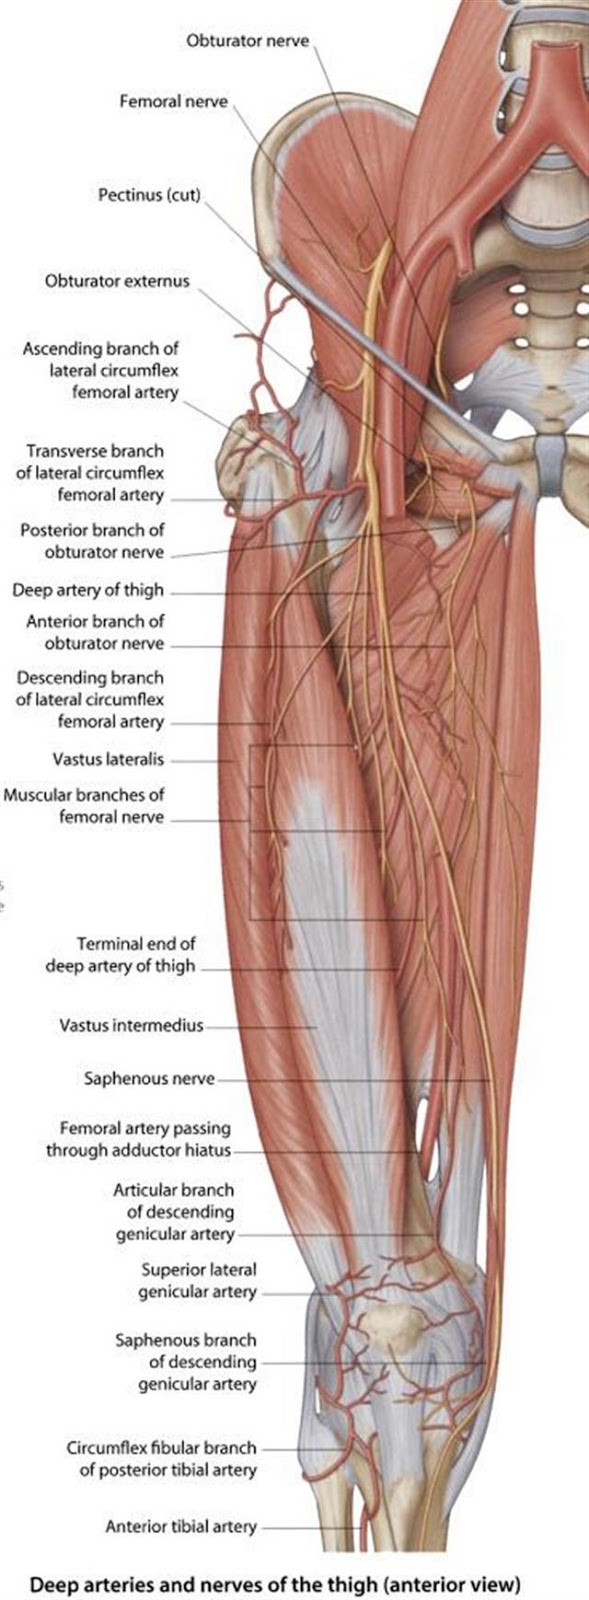 femoral nerve anatomy pictures and information - 589×1600